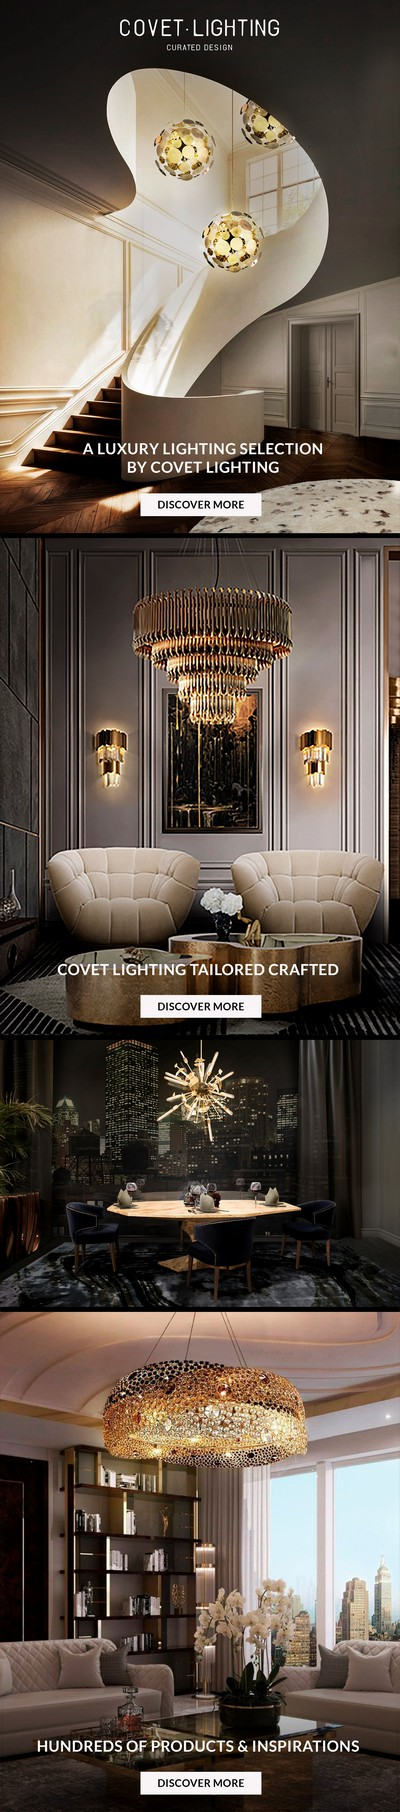 dining tables & chairs Home page sidebannermoodboardcovetlighting